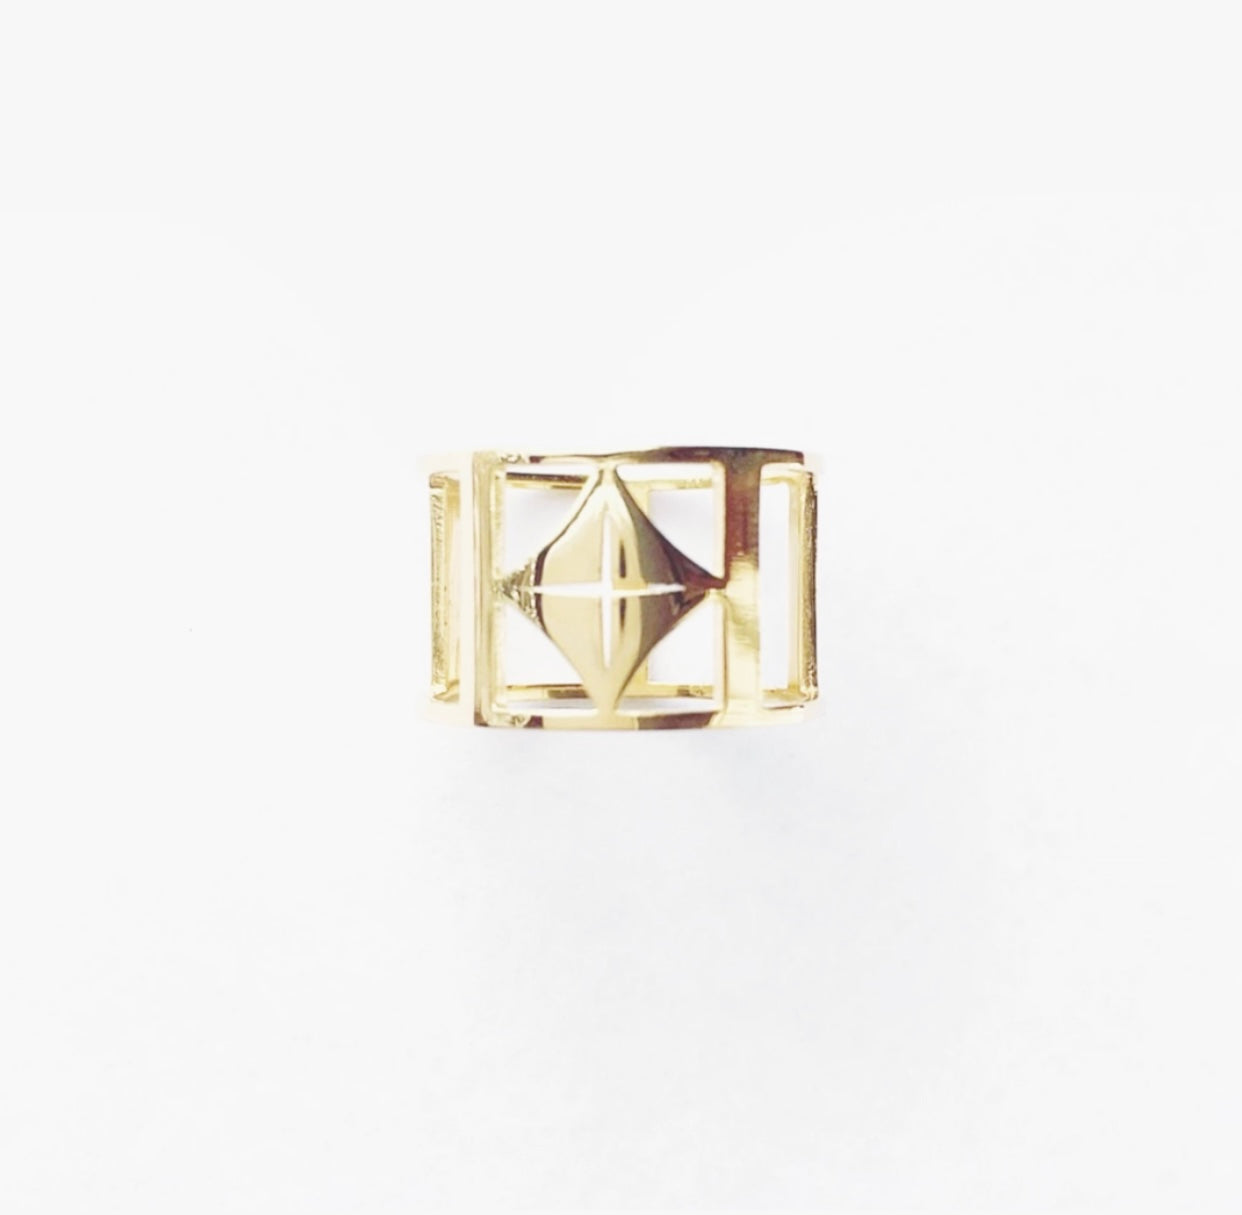 O.H.M. Classic Ring (18k Gold-Plated)